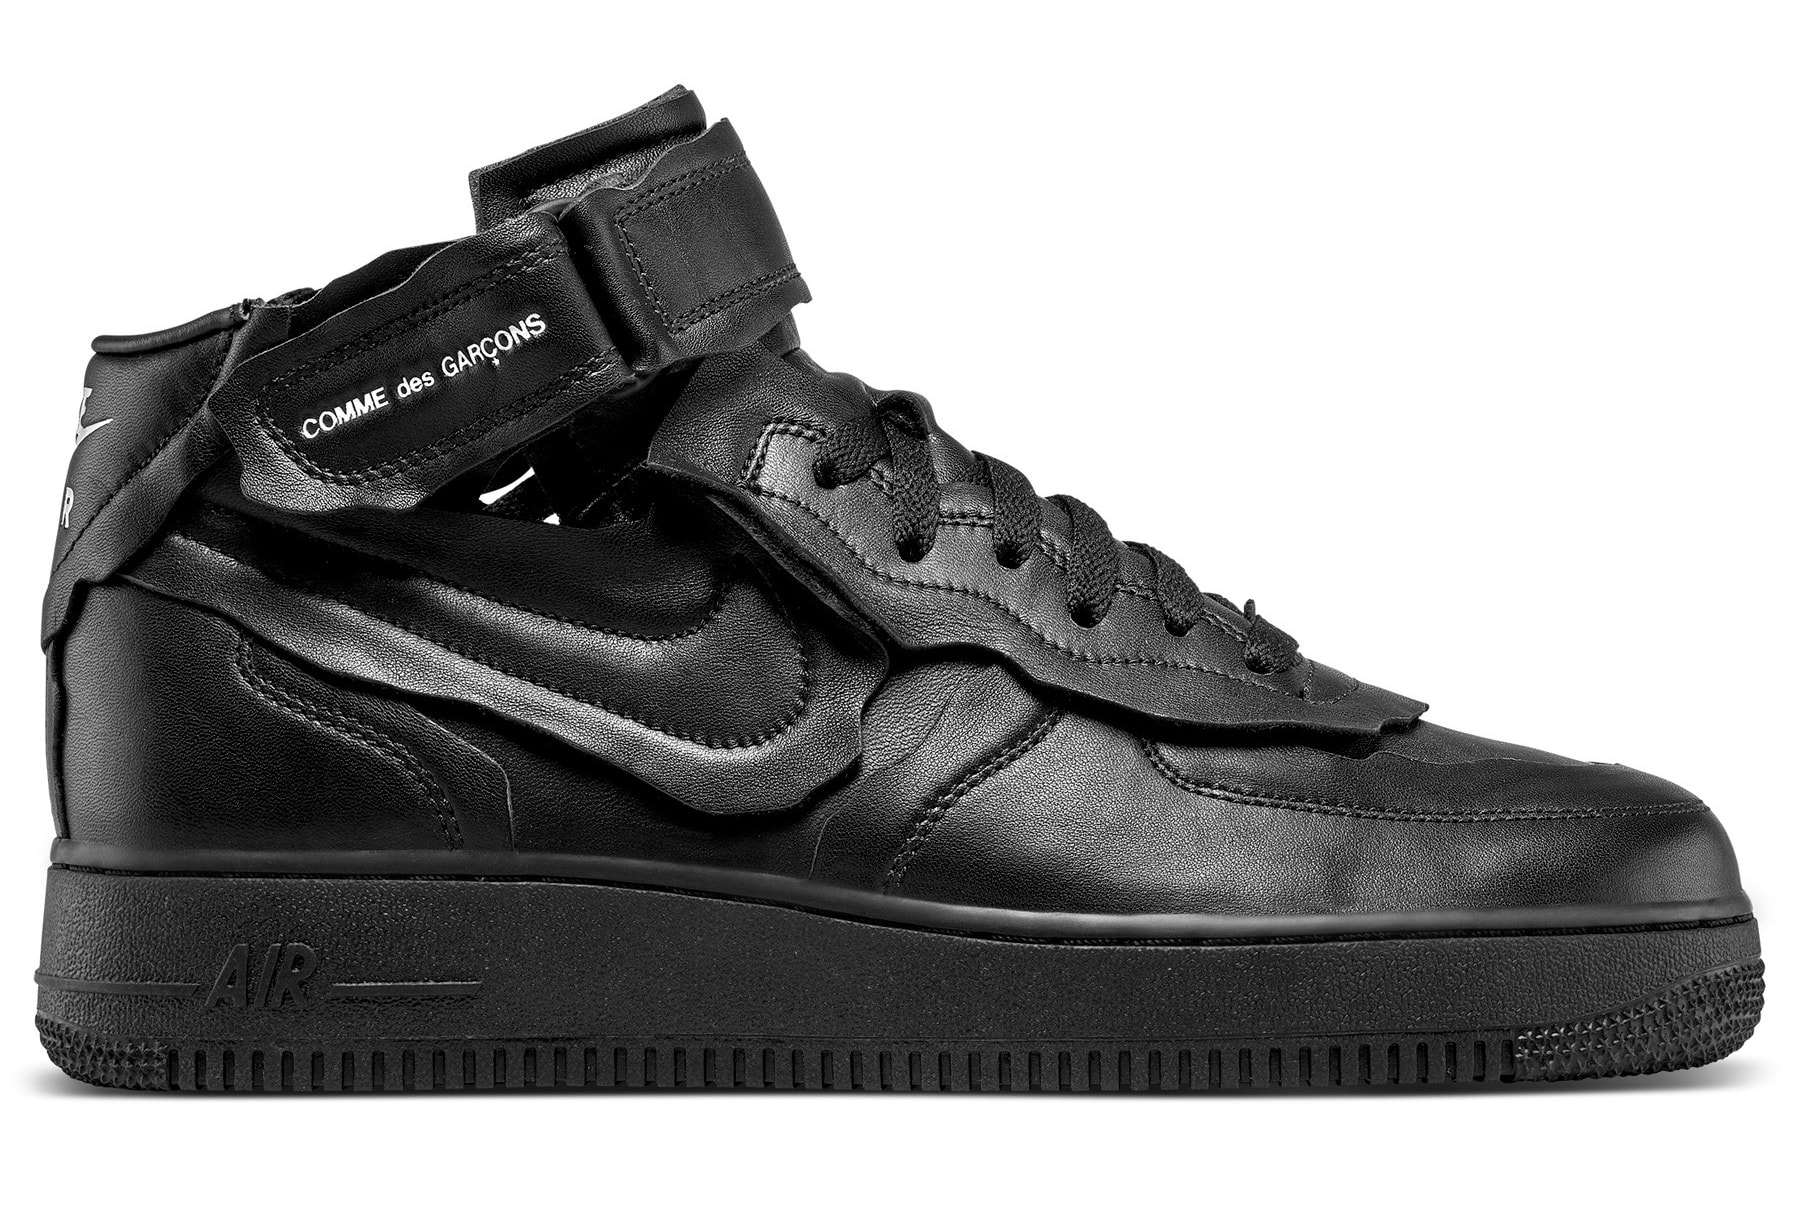 Comme Des Garcons x Nike Air Force 1 Mid 'Black' F/W 20 Lateral